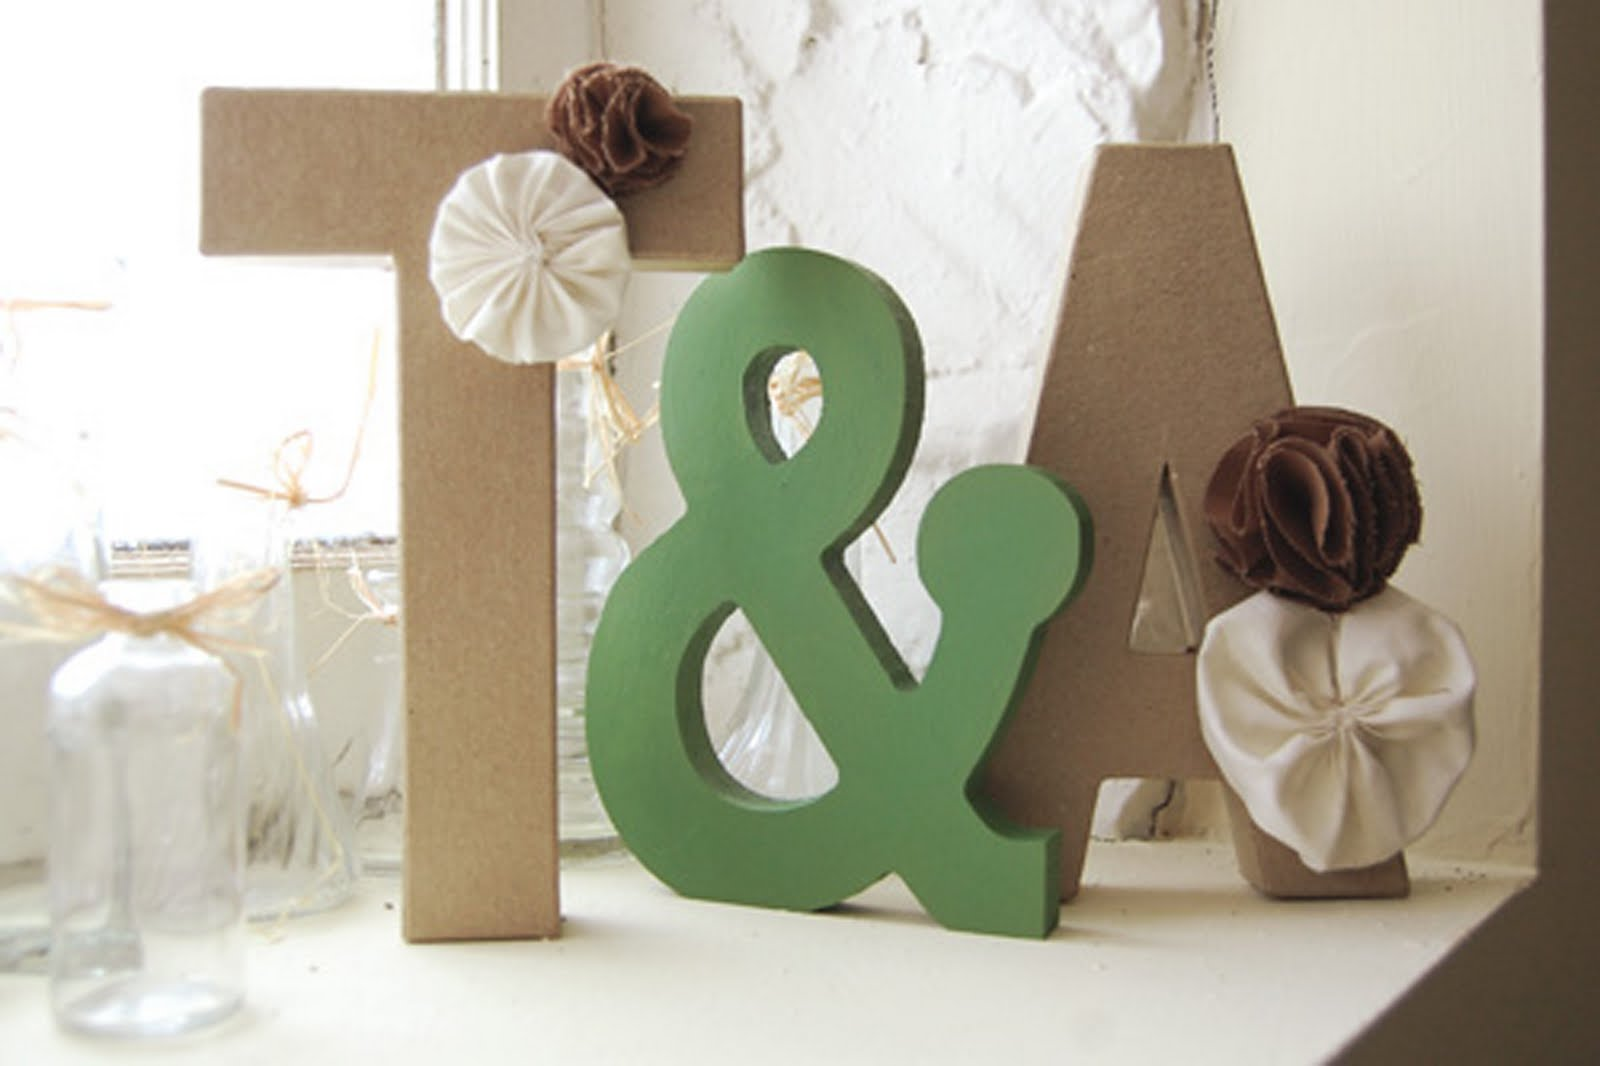 Diy home decor letters in honor of design for Ta home decor